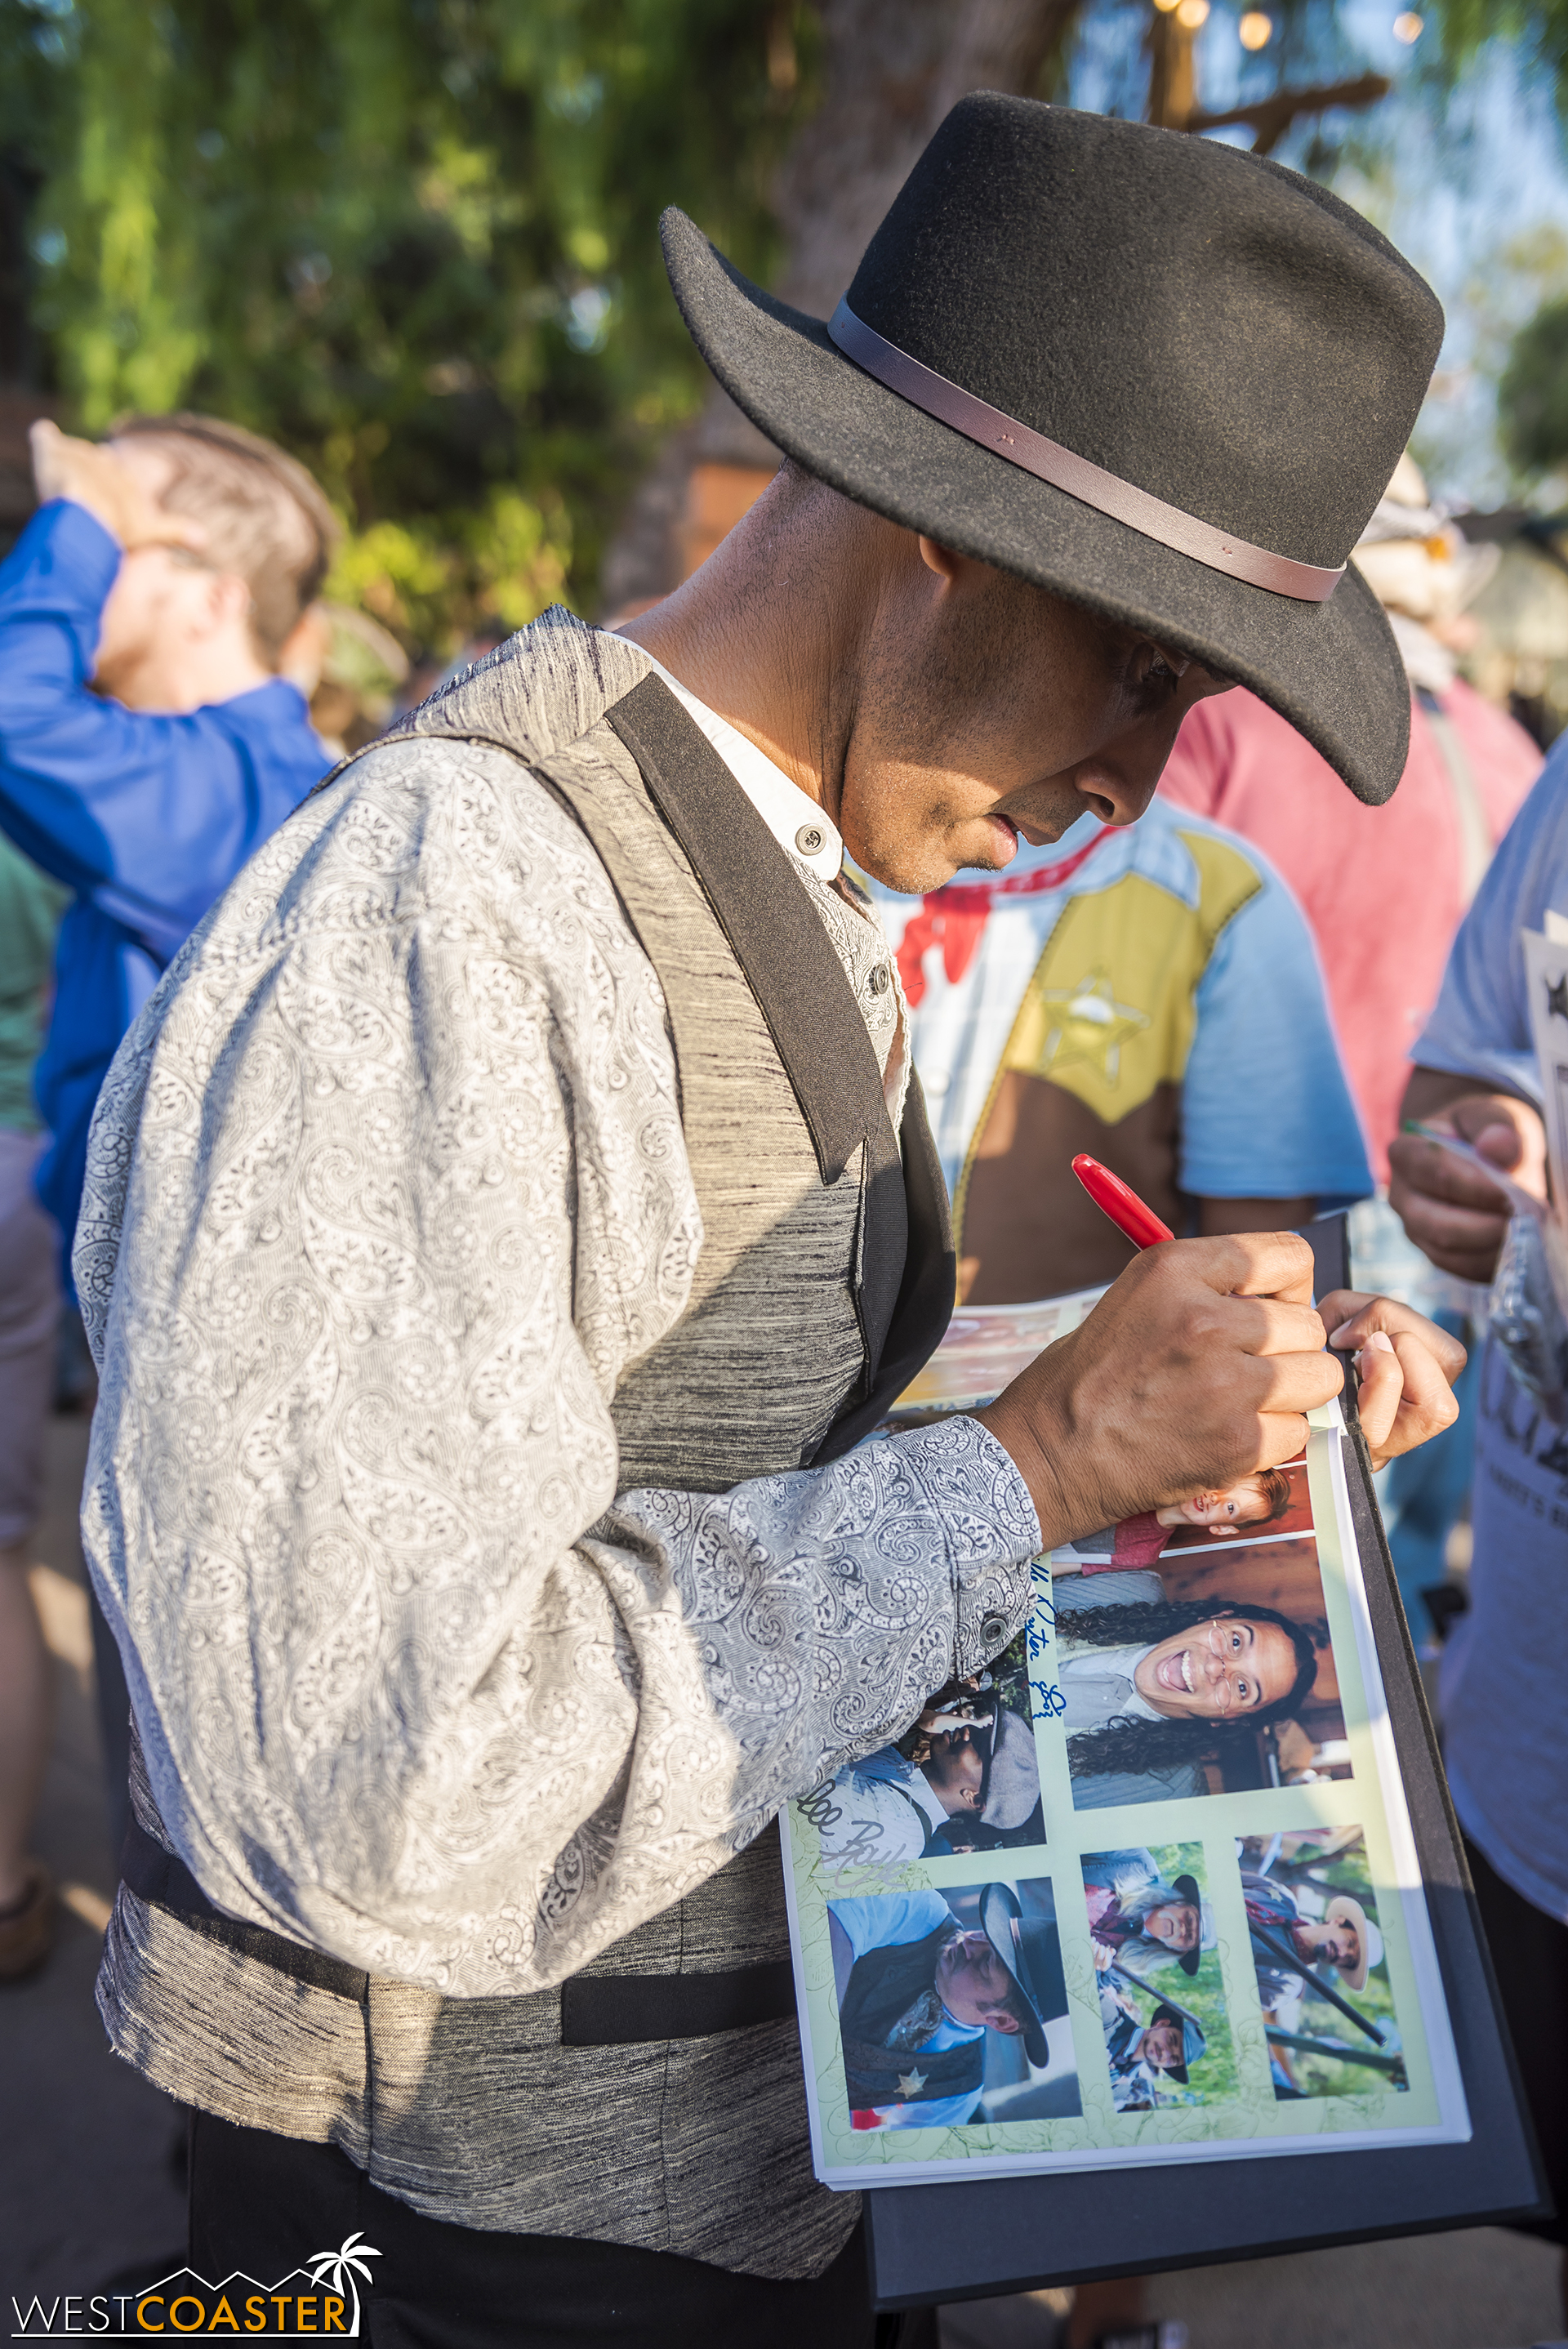 Some guests even bring their own self-made souvenirs for the actors to sign, as mementos.